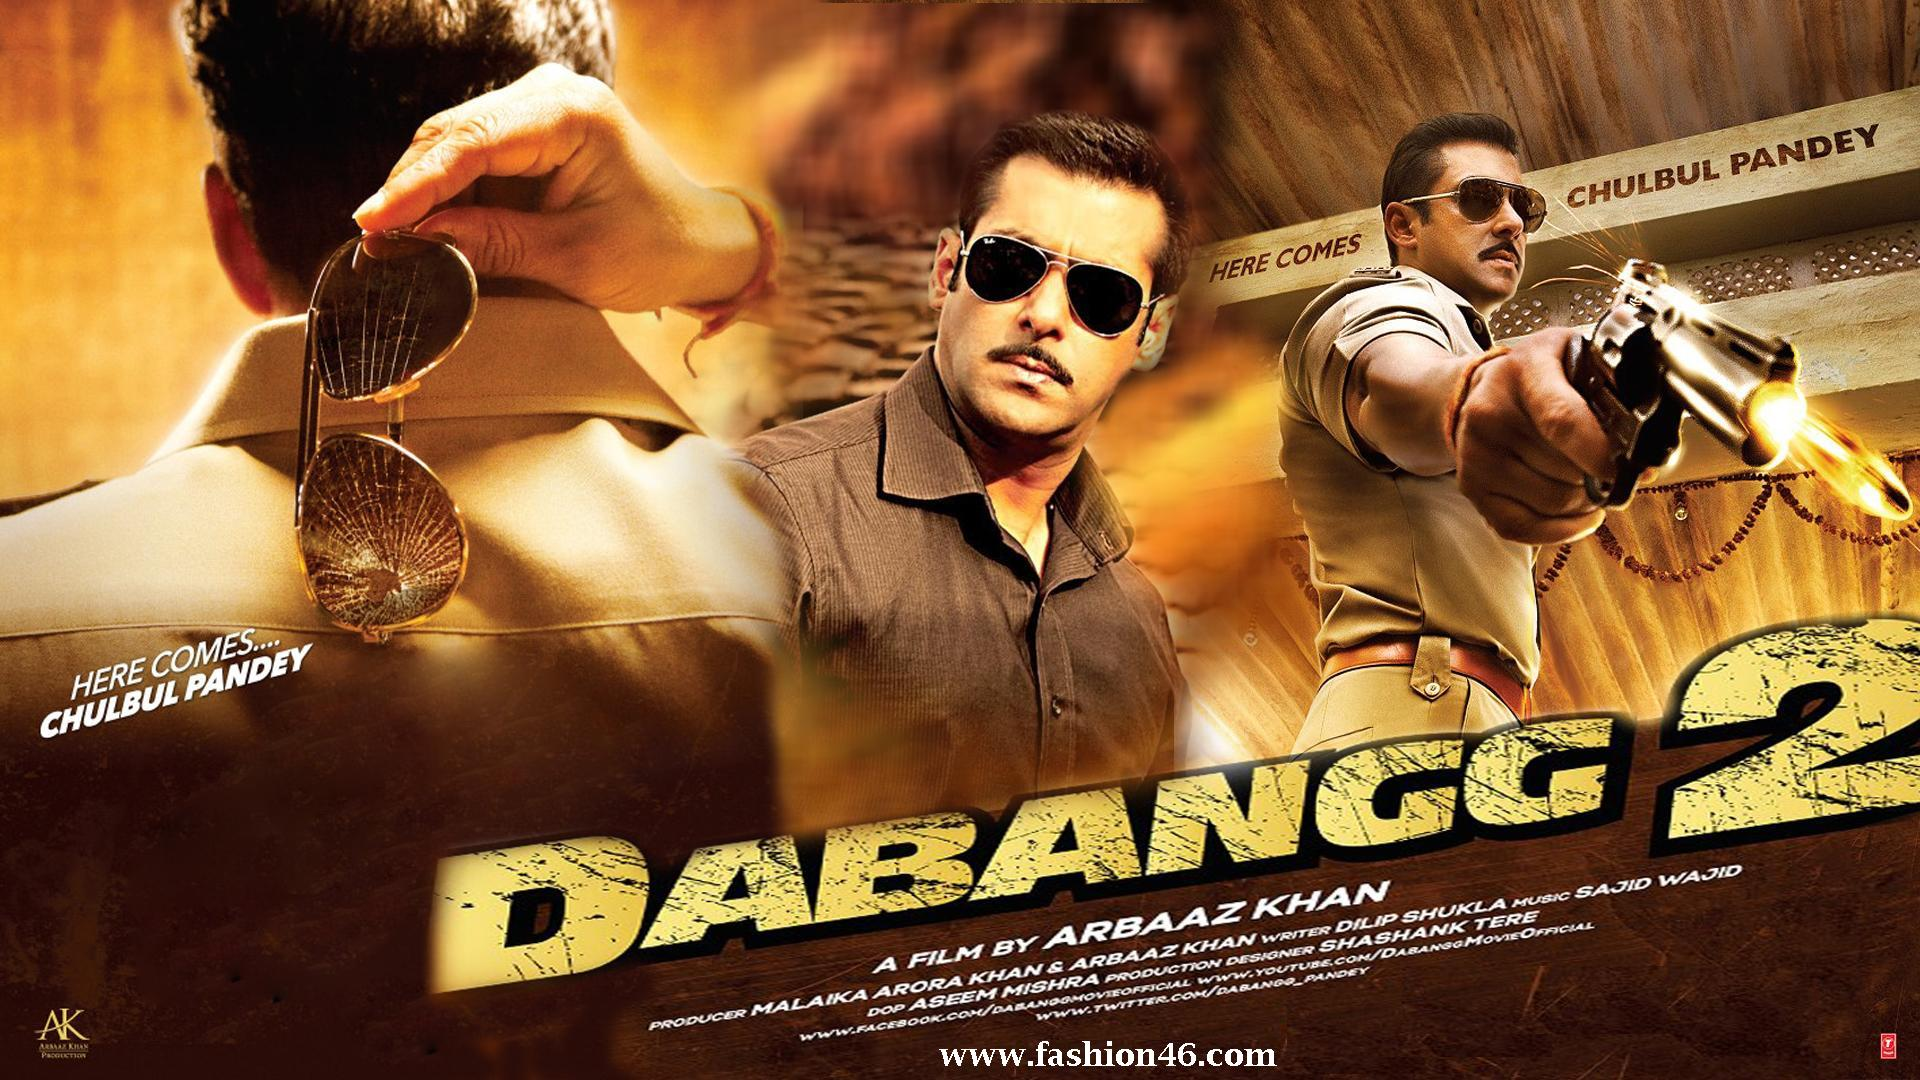 Dabangg 2 cross 100 crores Box Office